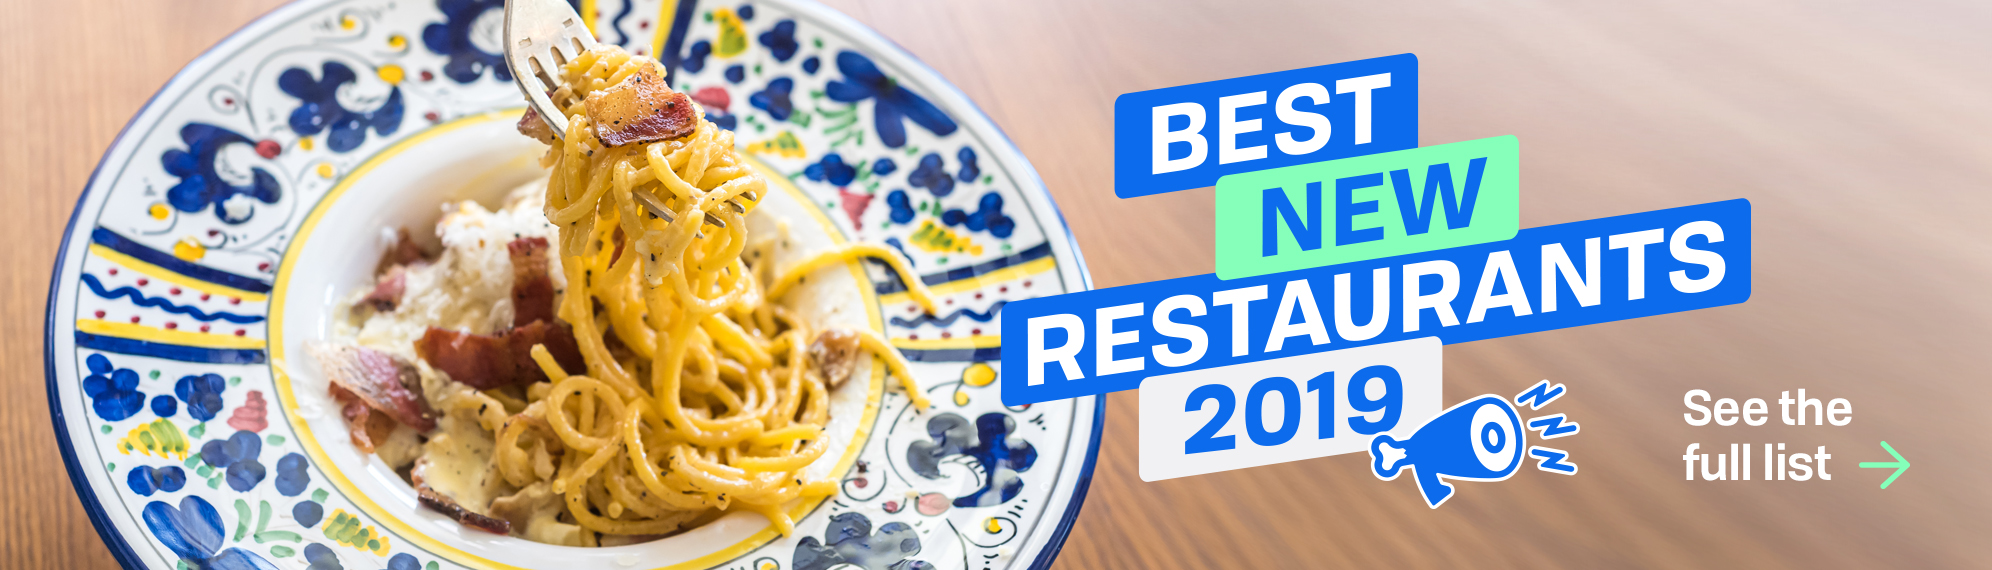 See the full list of London's Best Restaurants Of 2019.